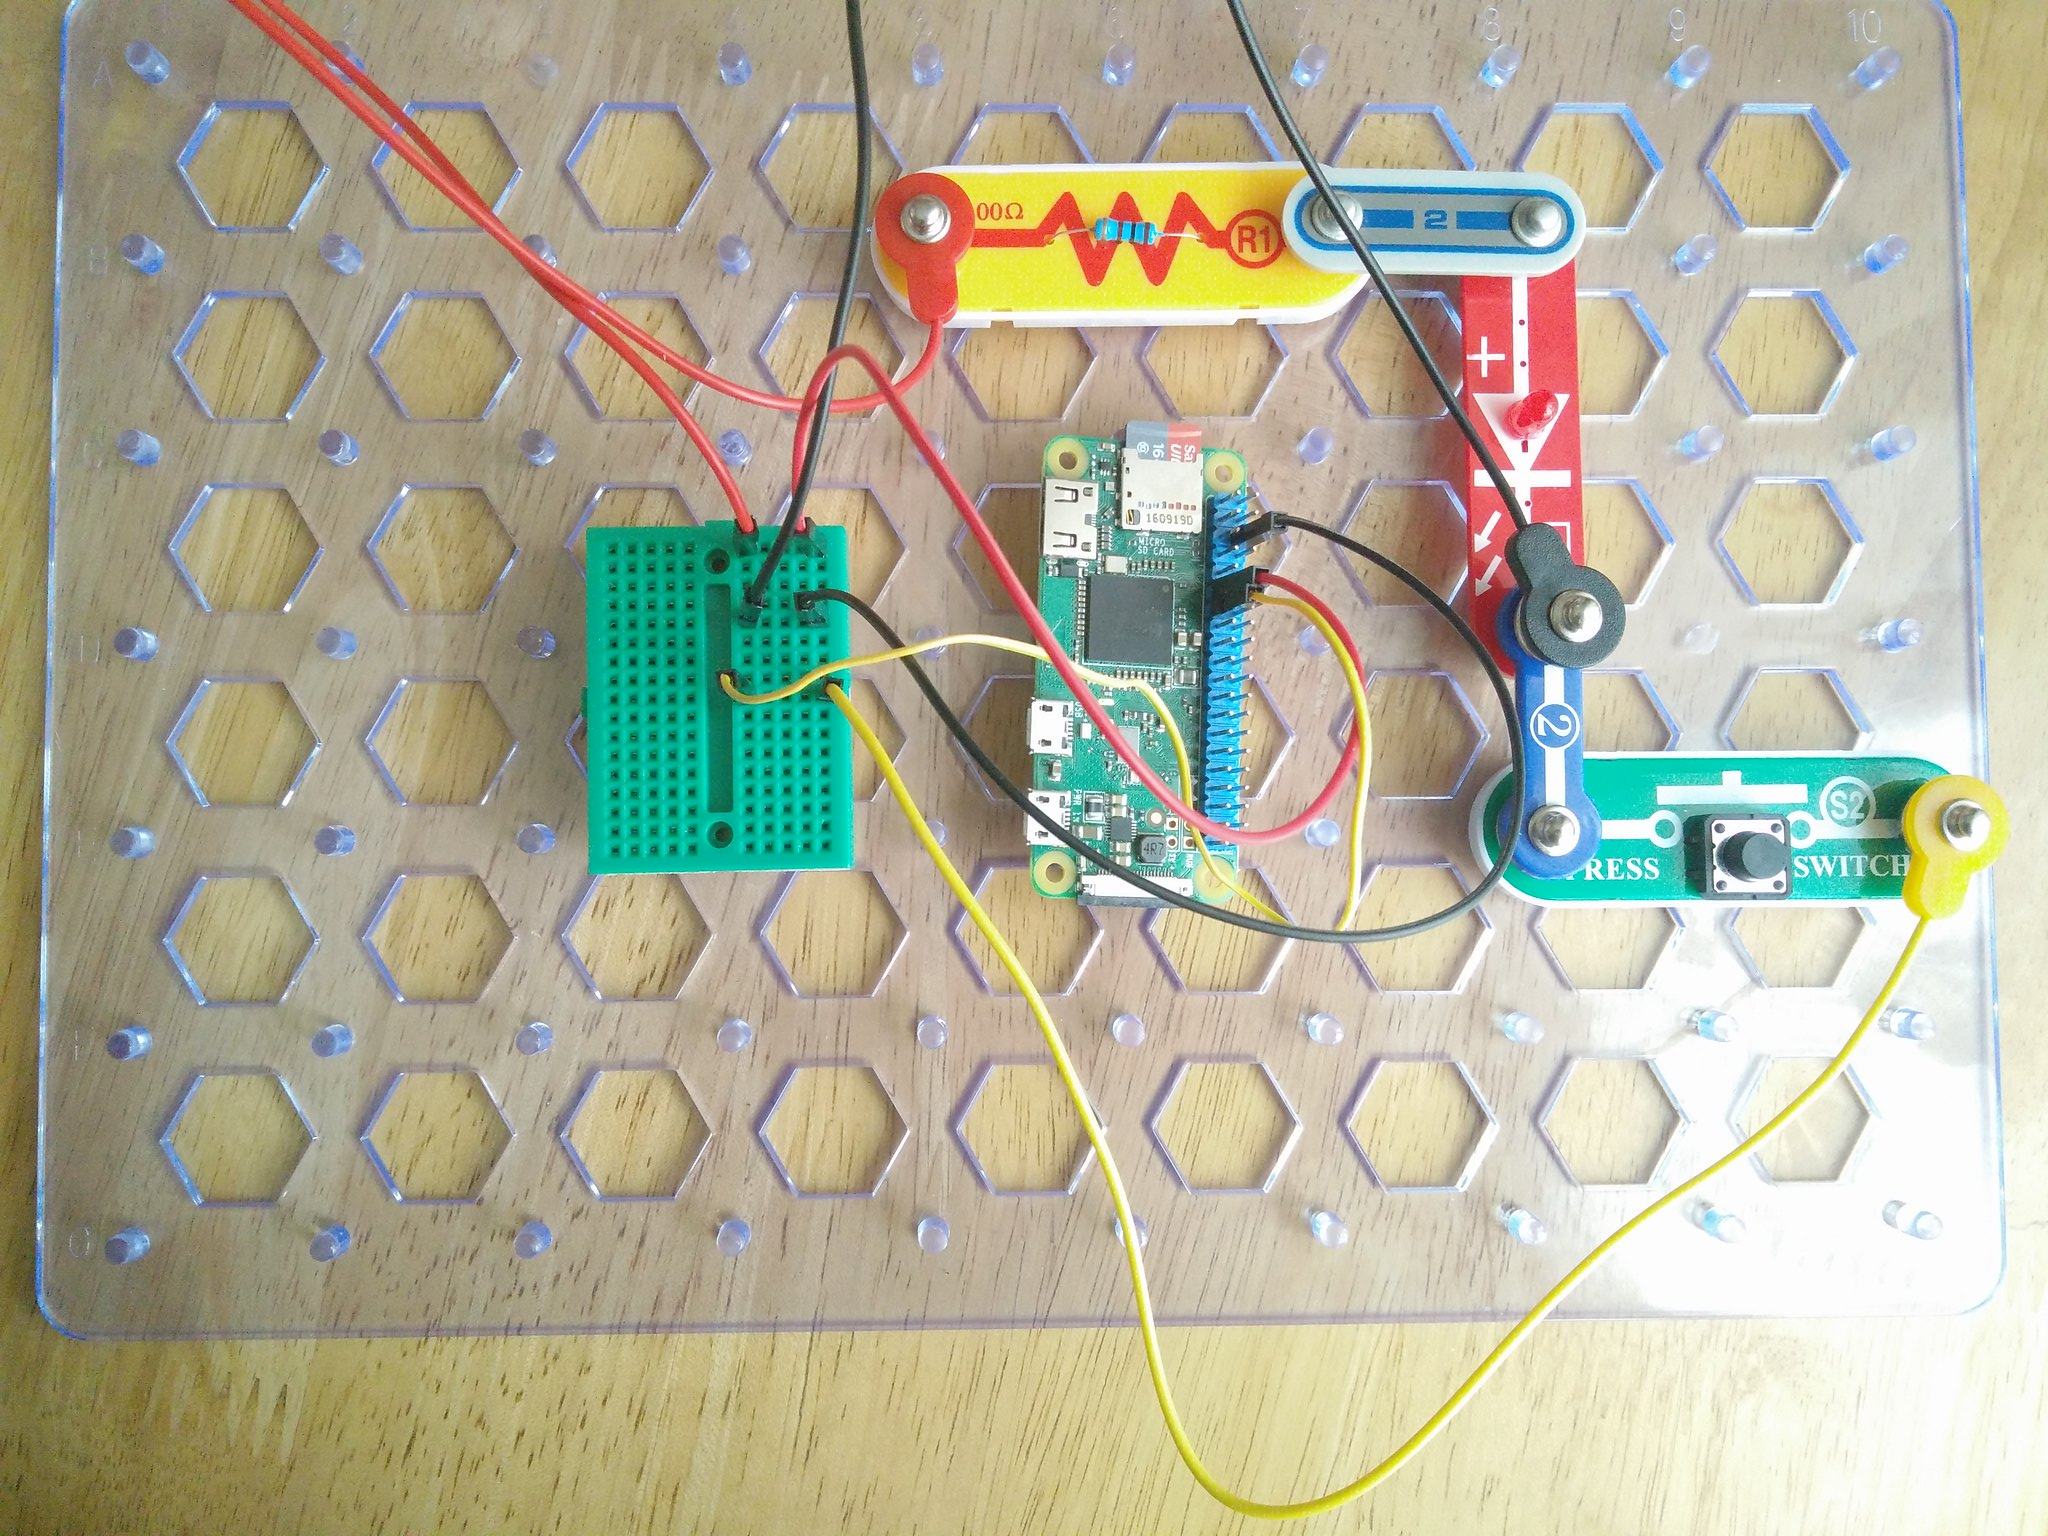 Using Hot Wires Snap Circuits With Raspberry Pi Wiring Games Alt